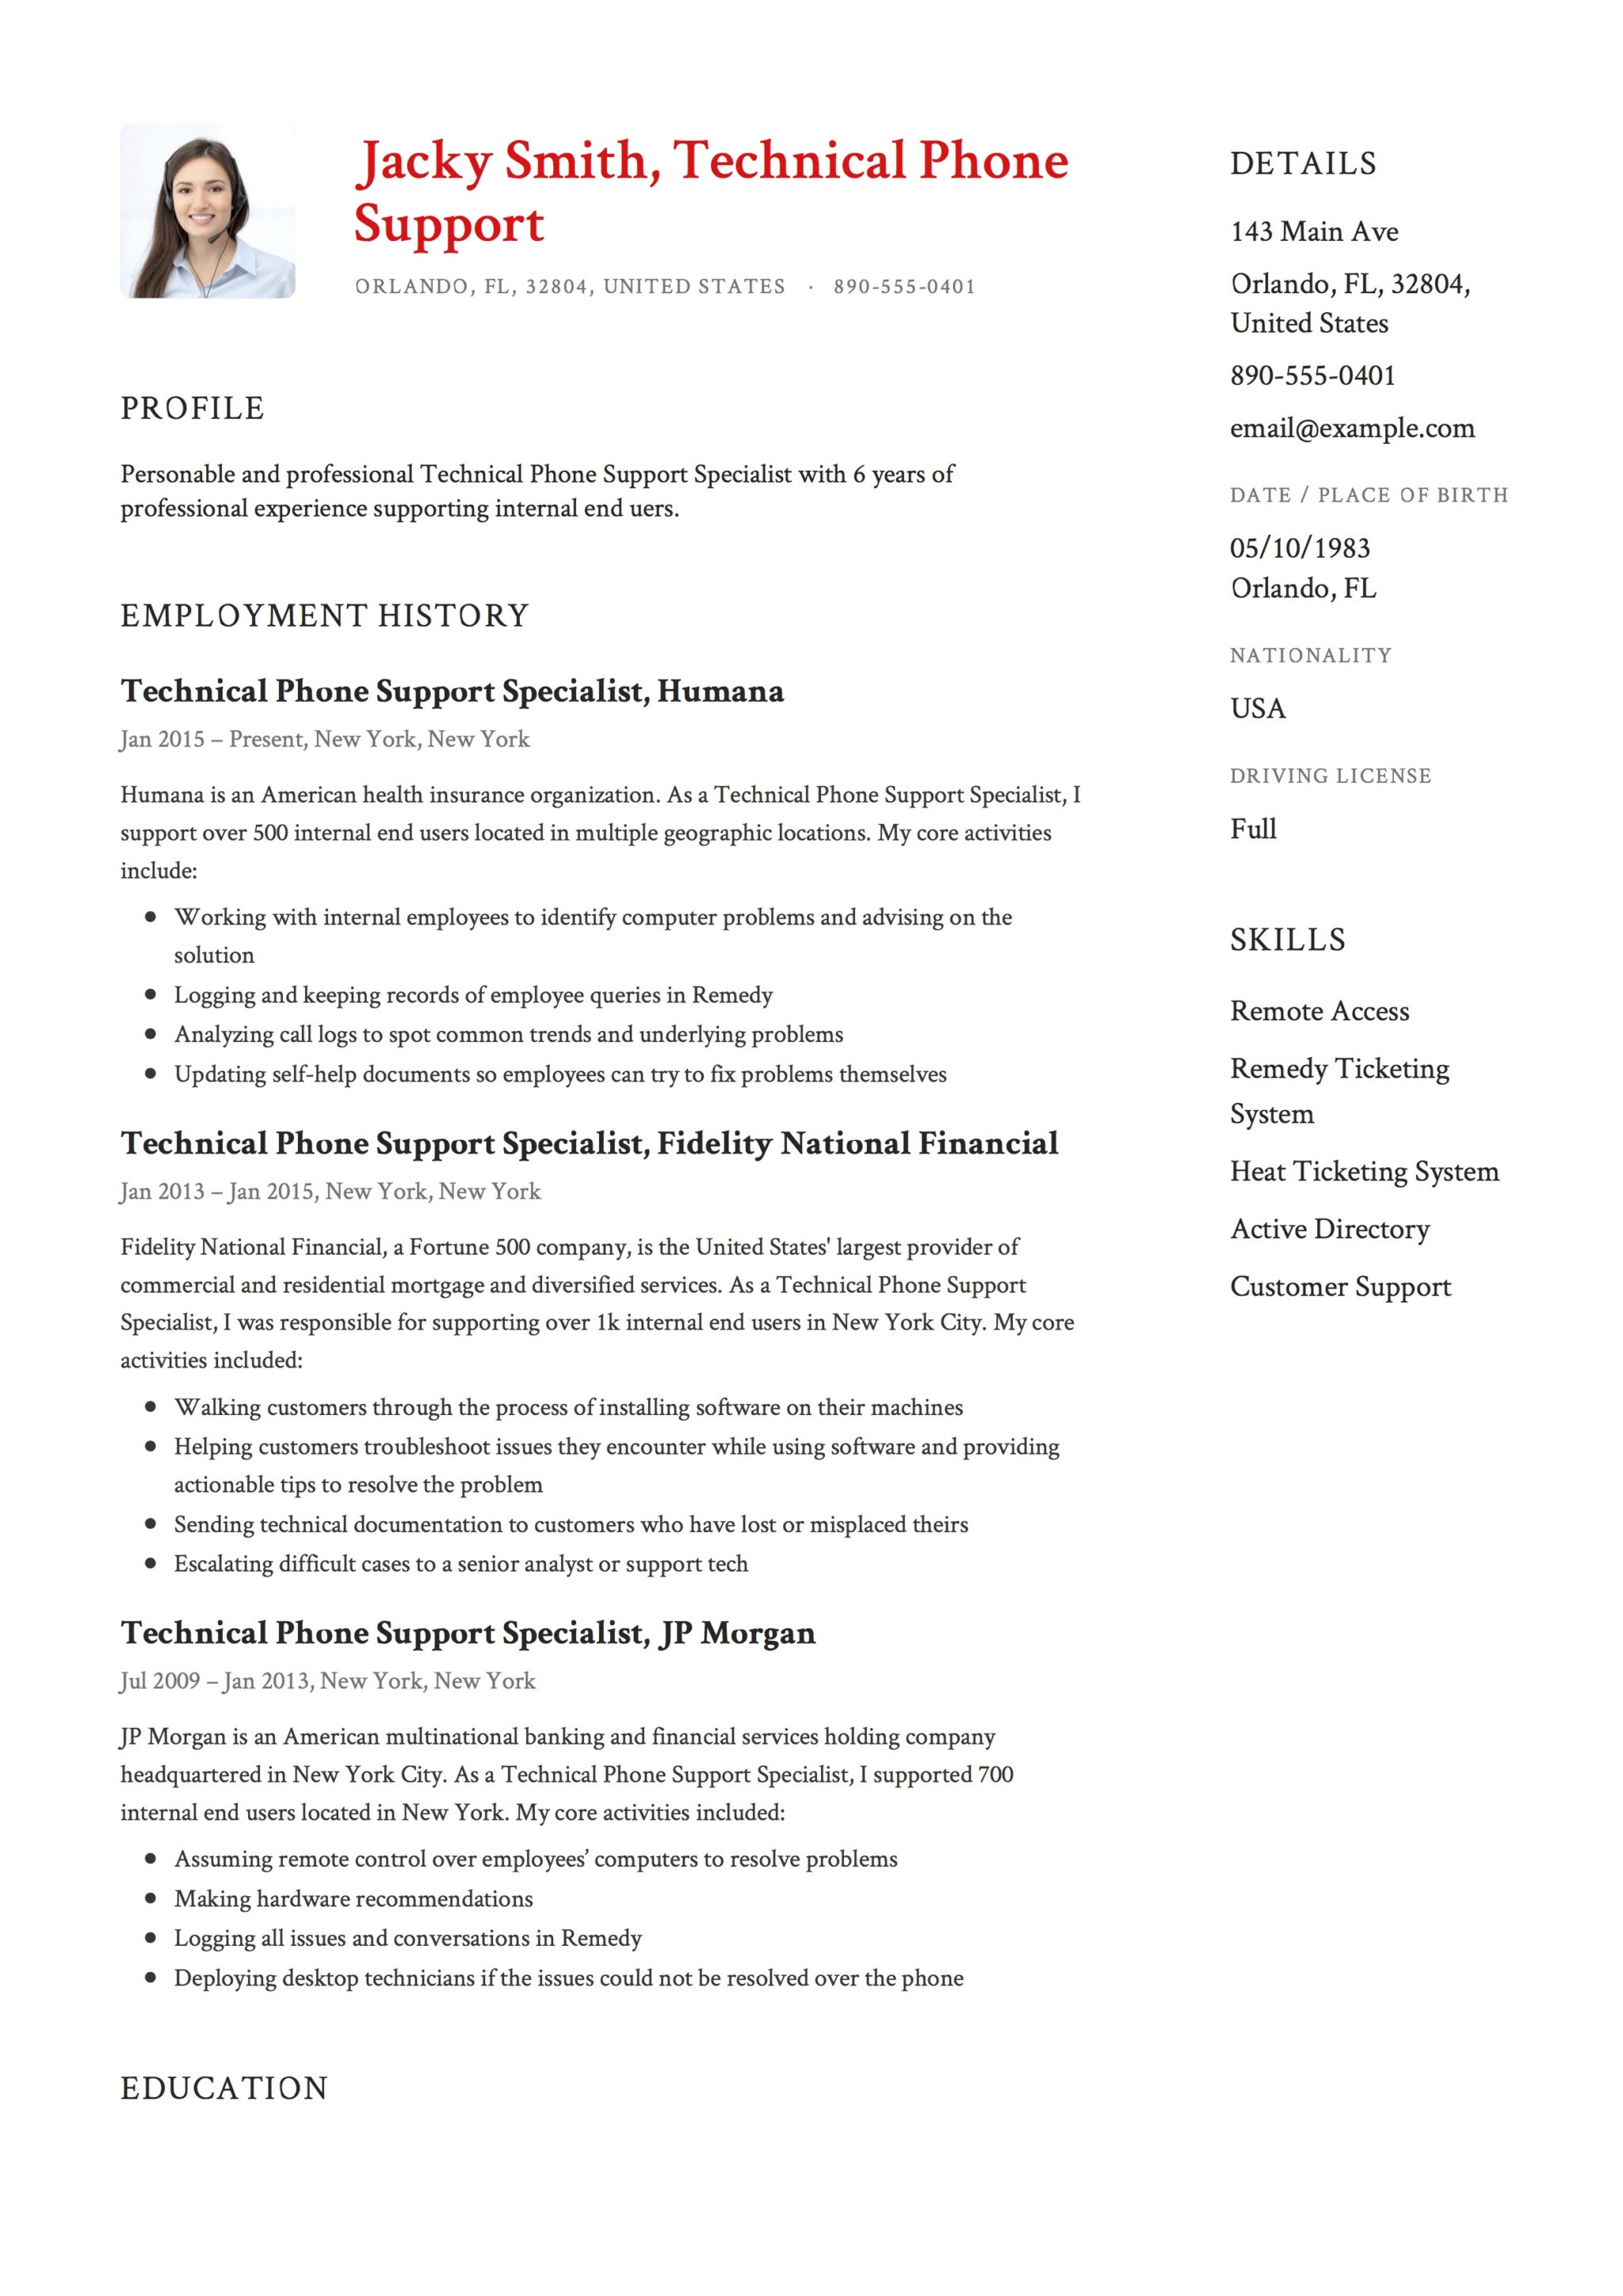 Jacky Smith Resume Technical Phone Support